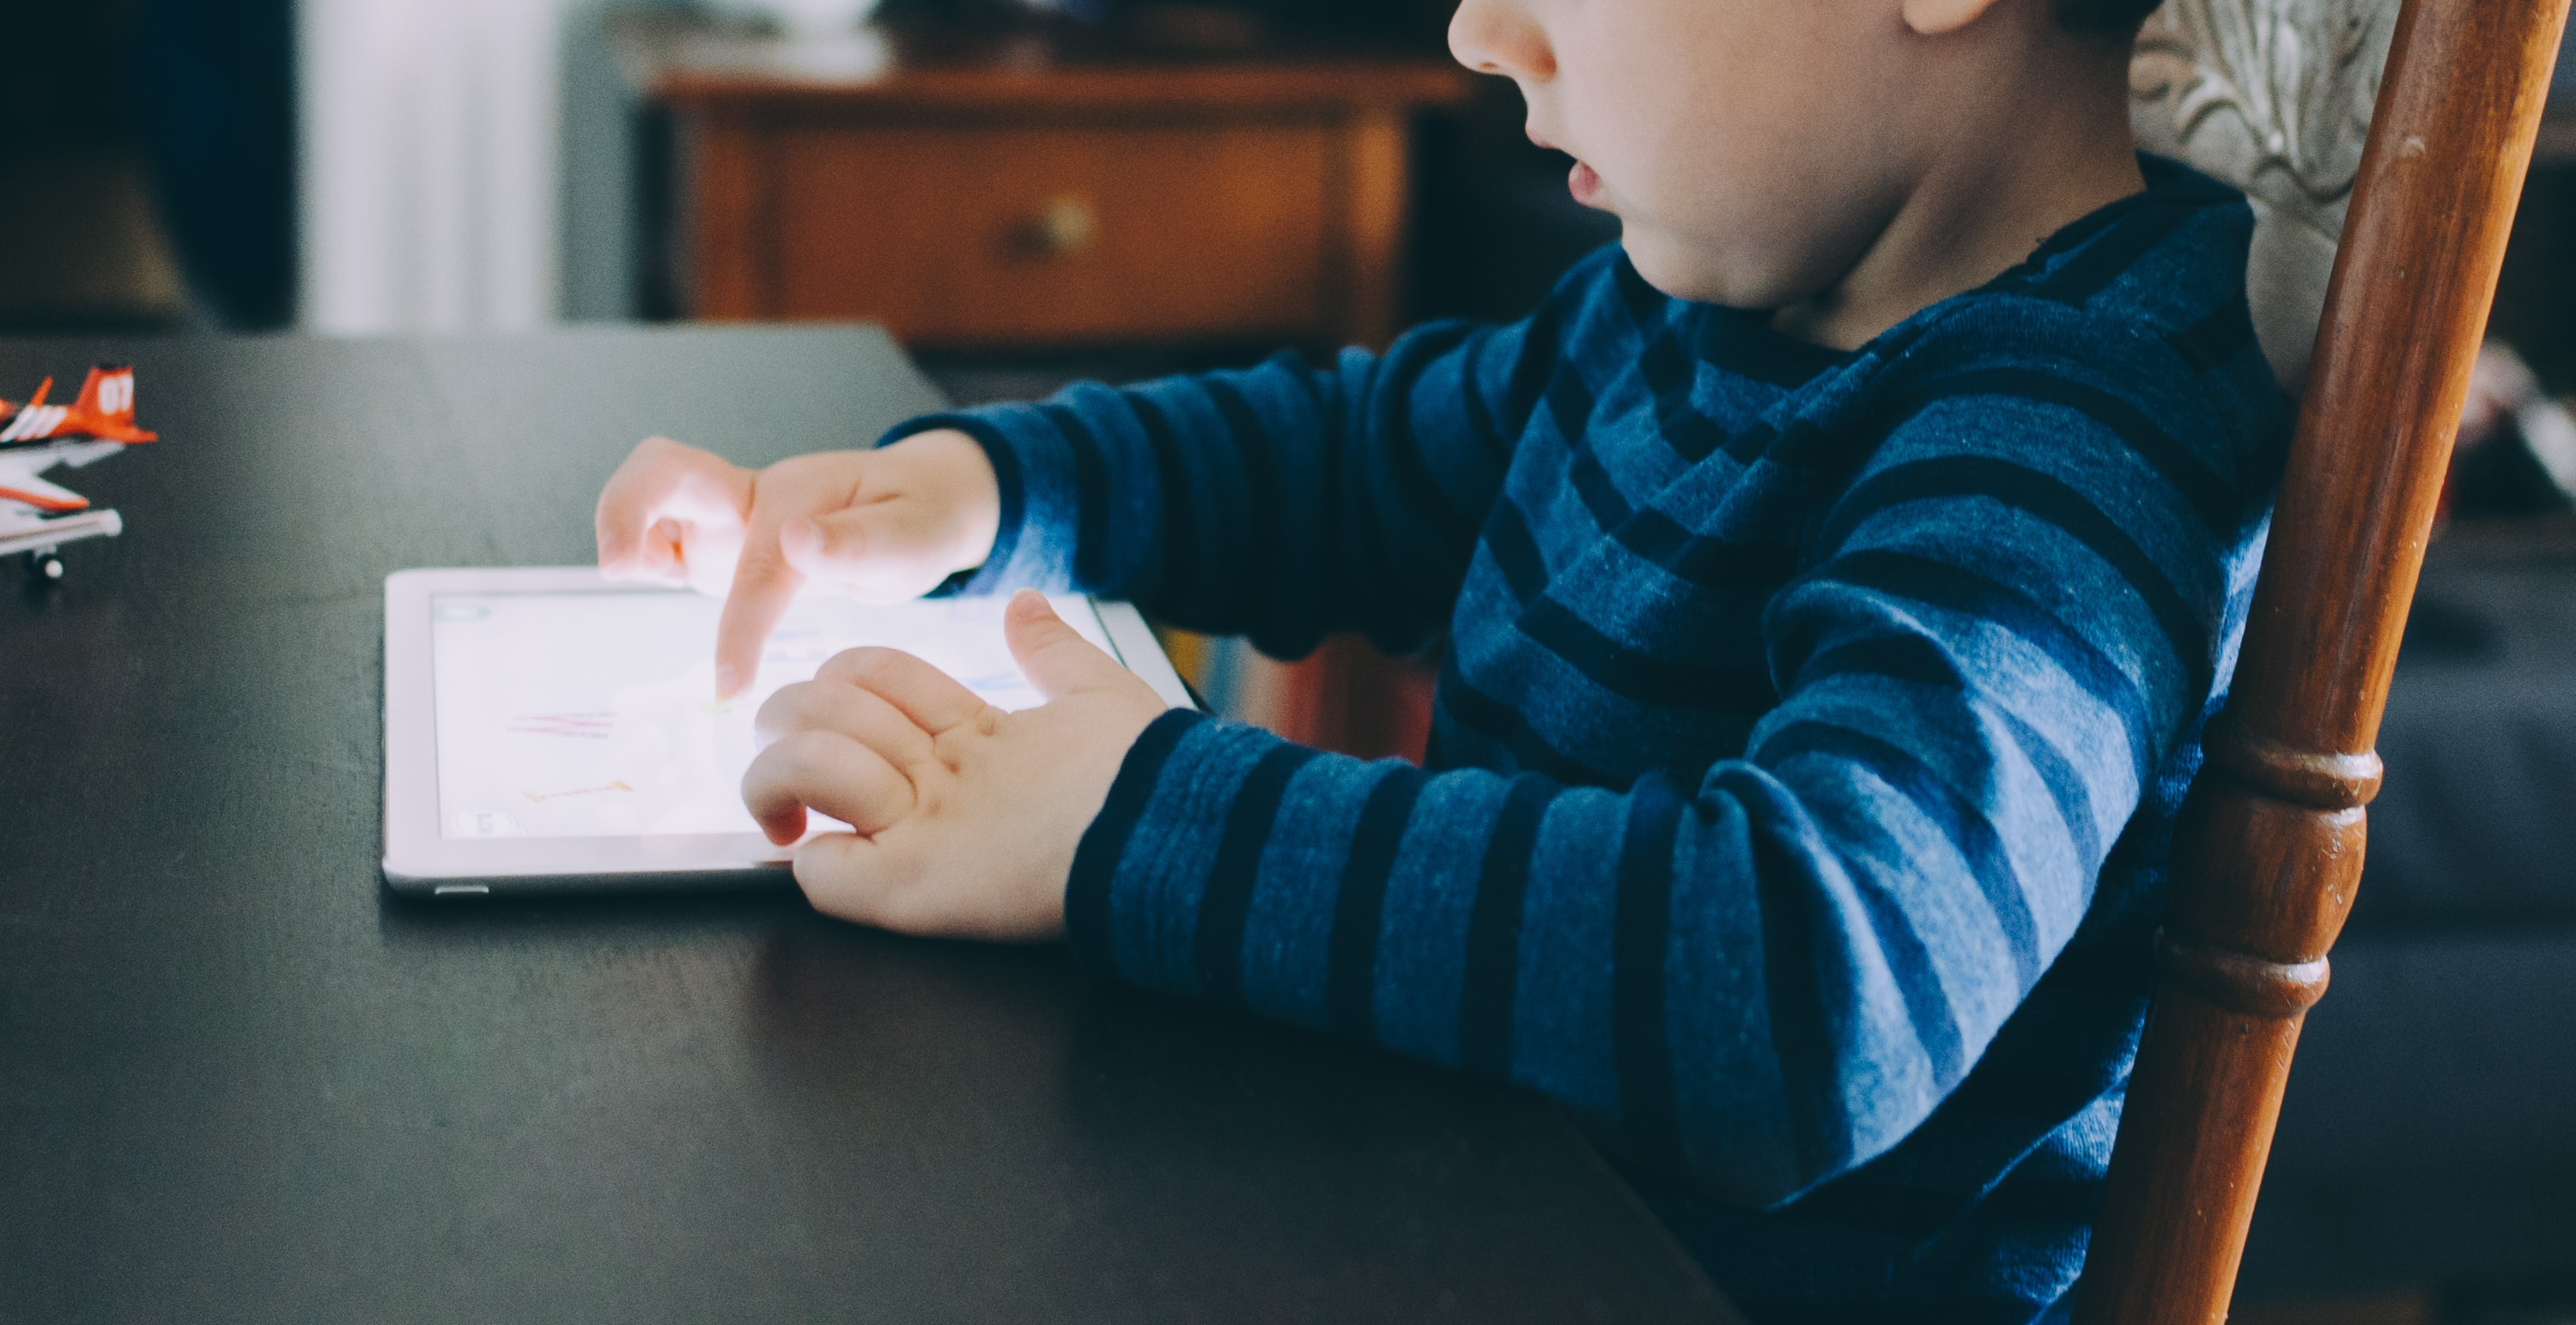 A child playing with an iPad while seated at a table